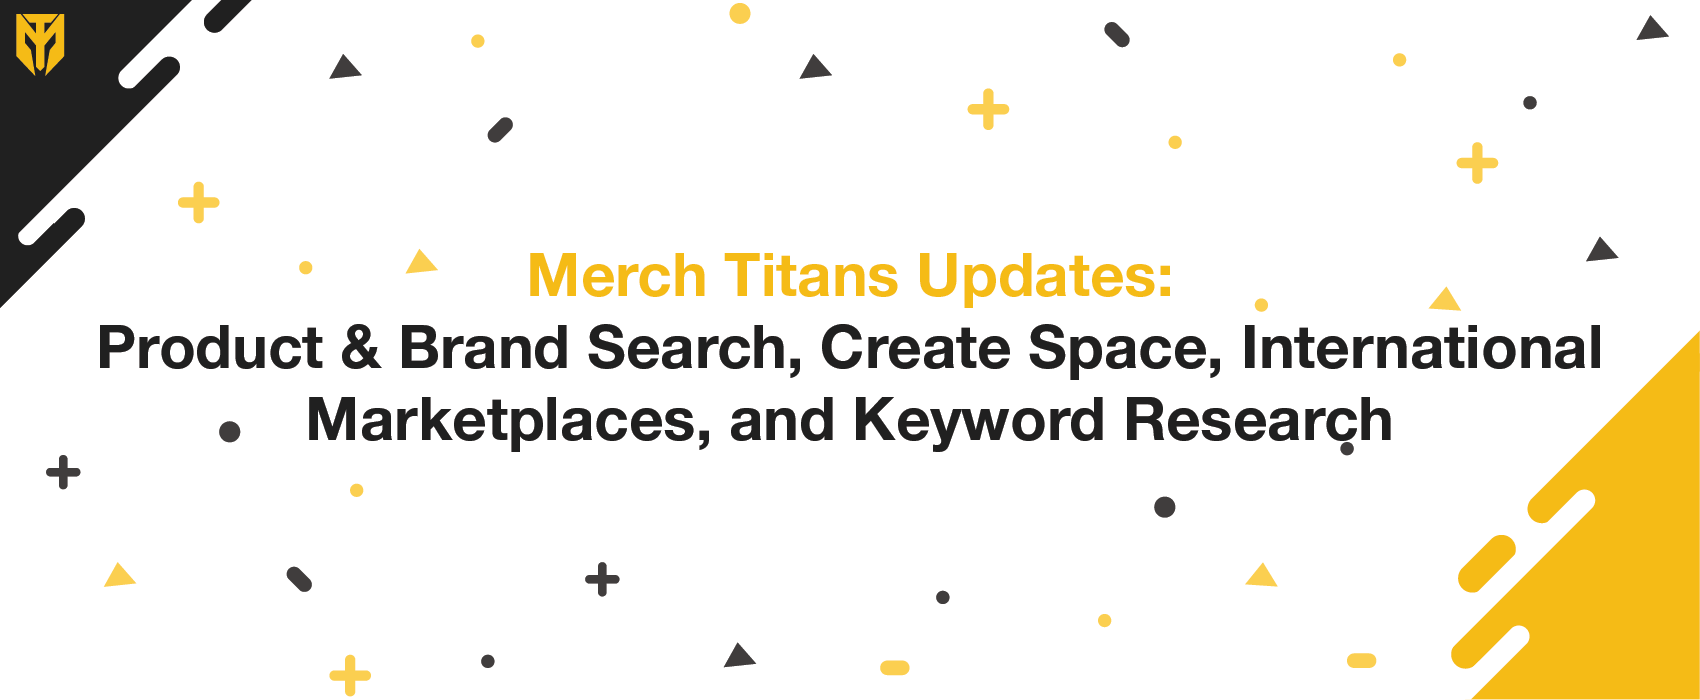 Merch Titans Updates: Product & Brand Search, Create Space, International Marketplaces, and Keyword Research